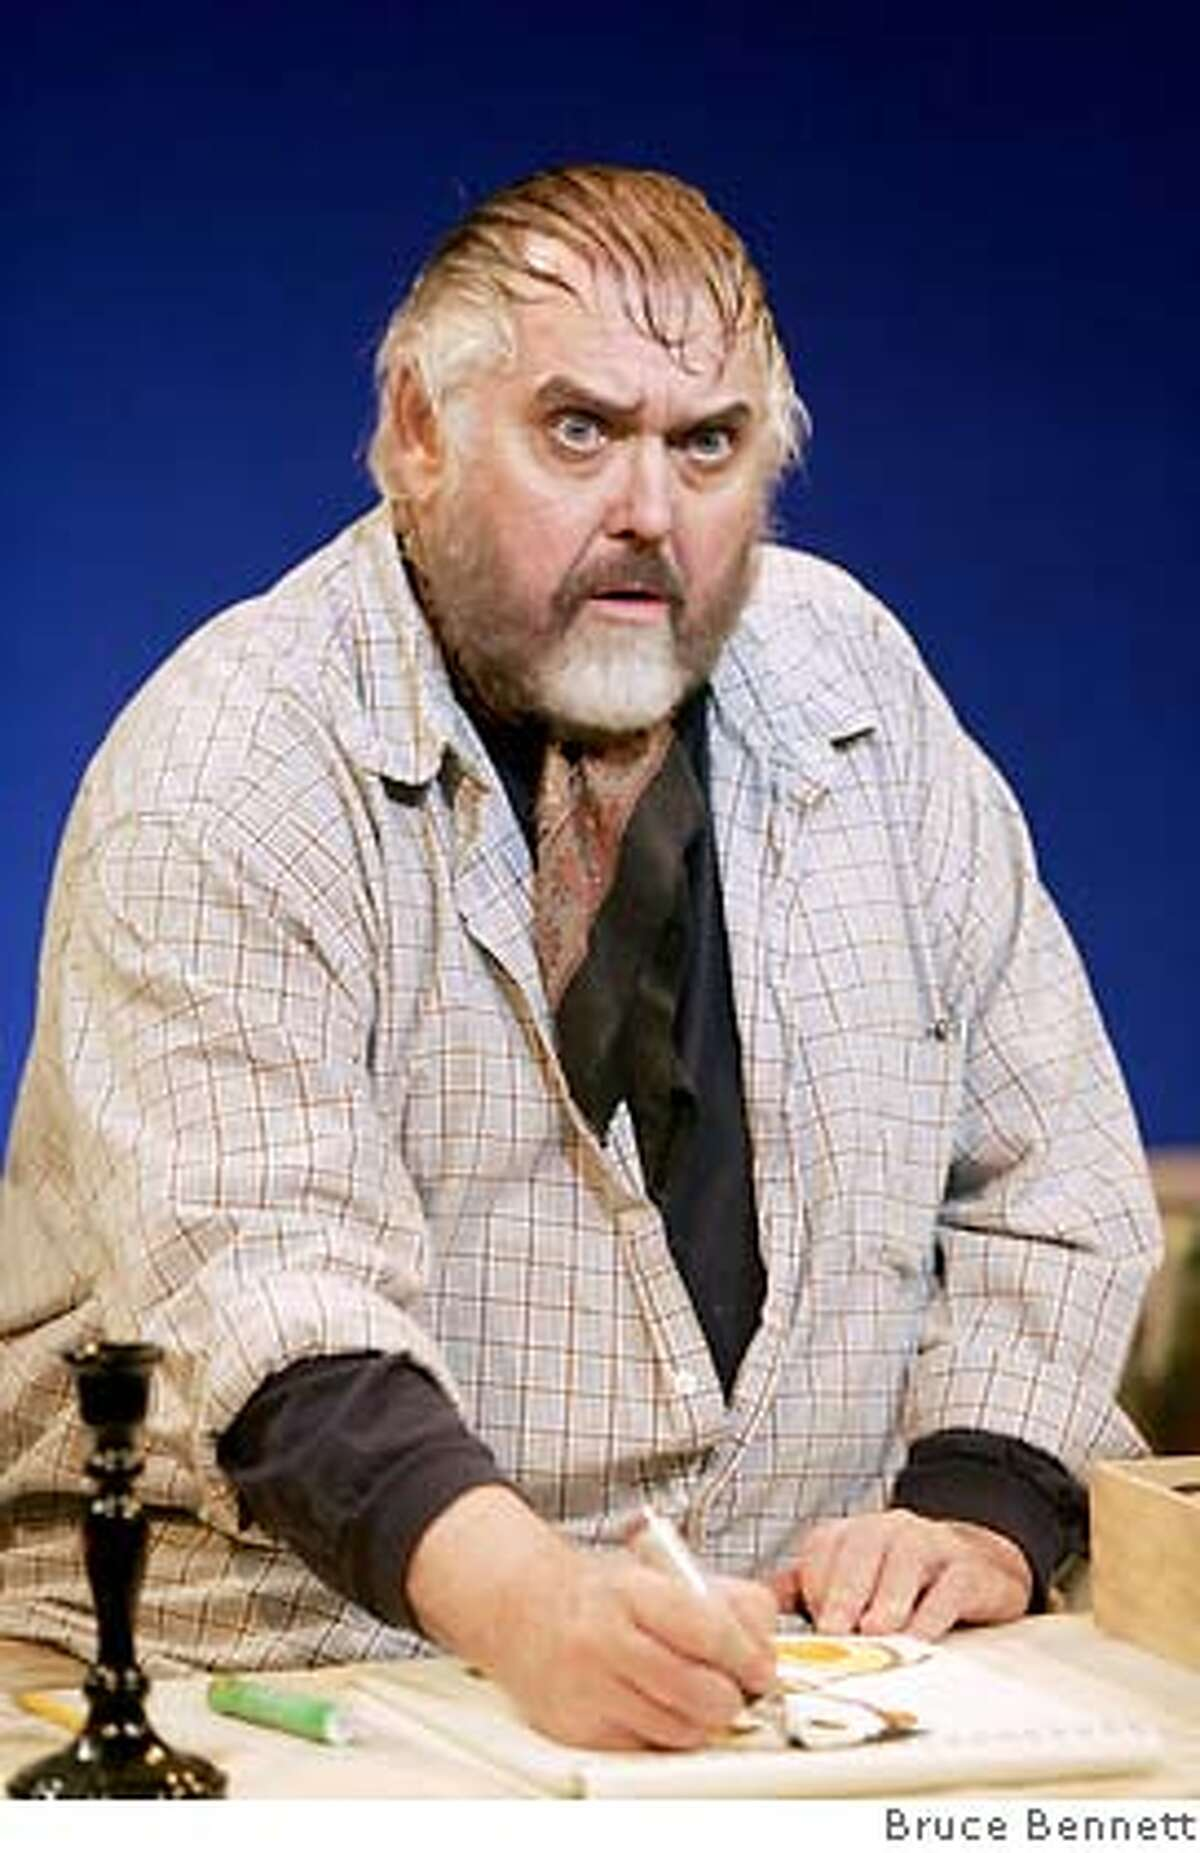 Jim Brochu as Zero Mostel in Stages Repertory Theatre's production of Brochu's one-man show ZERO HOUR.